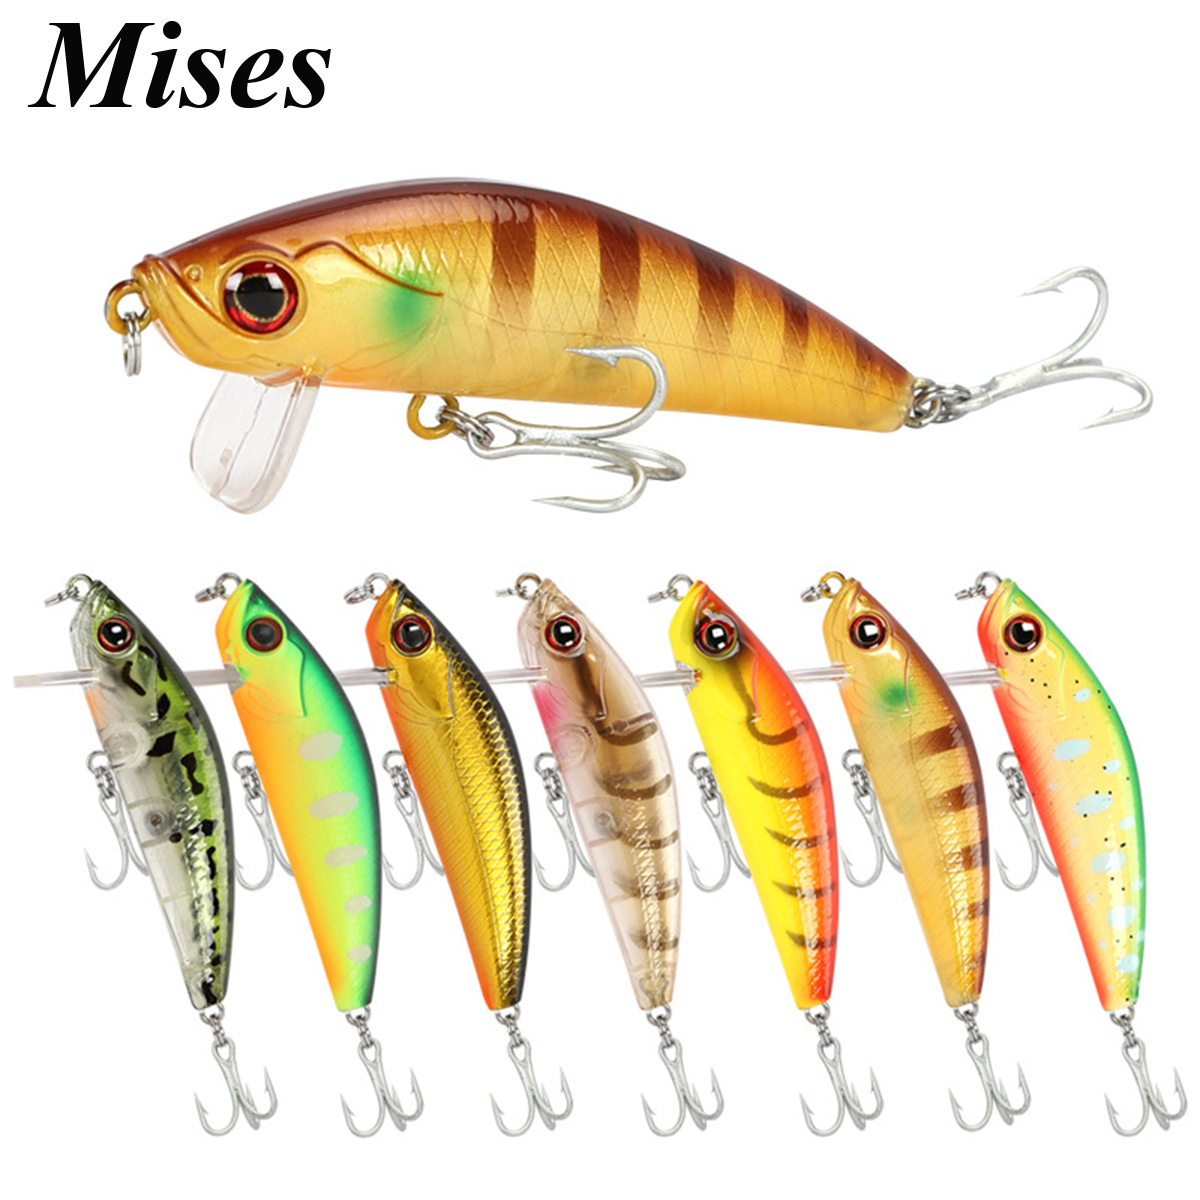 Mises 6.5cm 6.35g Ten Colors Floating Bionic Minnow Lure Artificial Bait Plastic Hard Bait Stream Fishing Lure Fishing Tackles